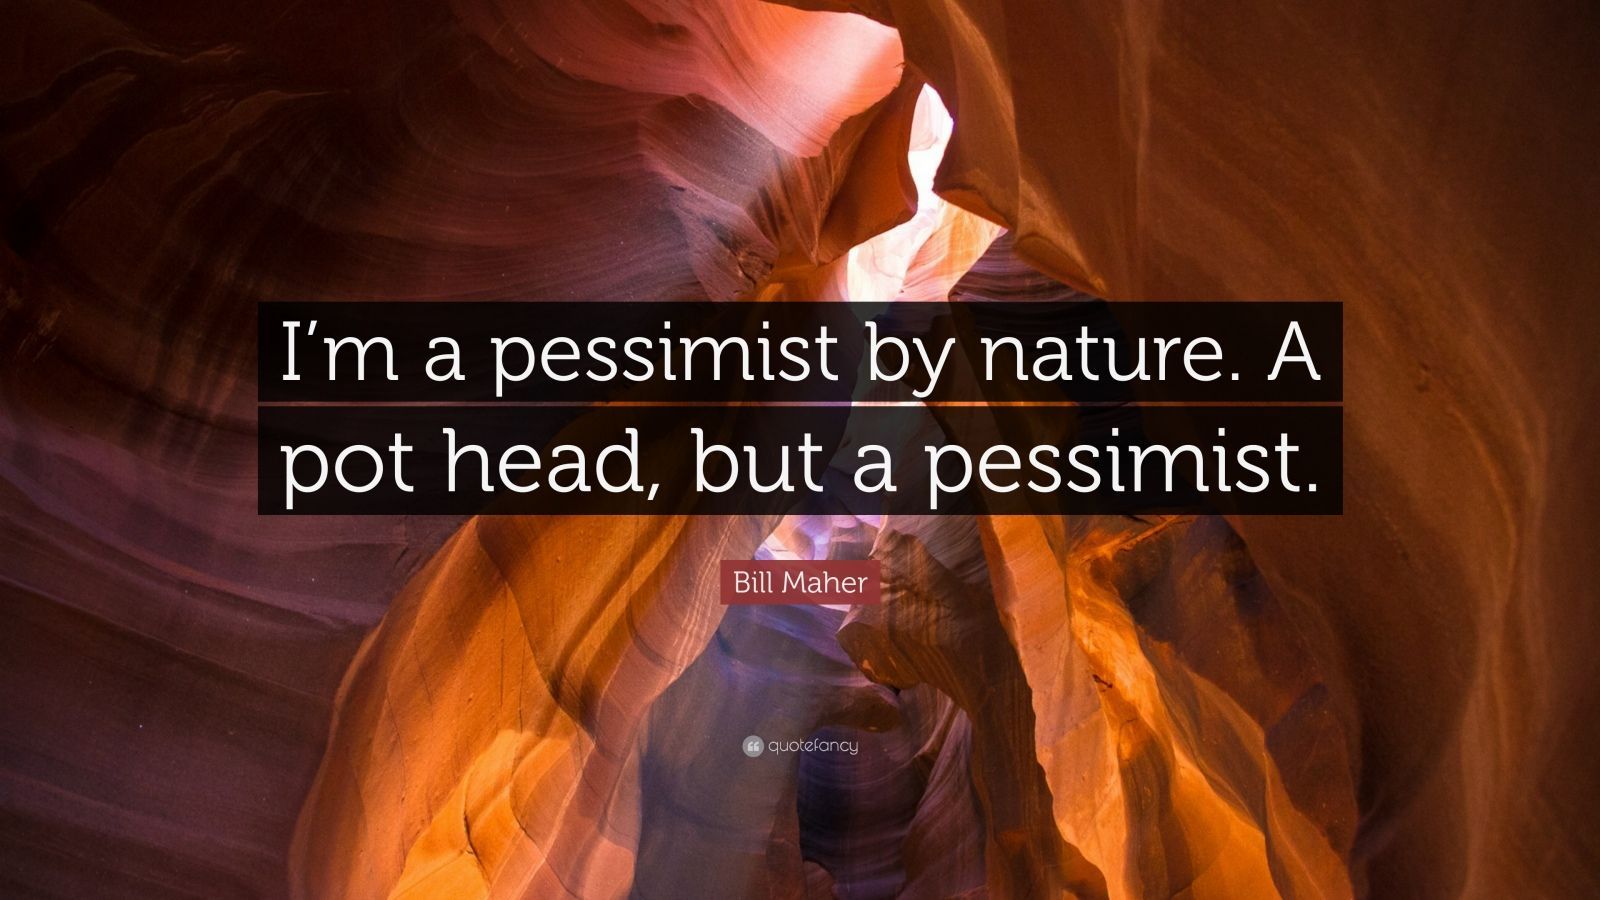 """Bill Maher Quote: """"I'm a pessimist by nature. A pot head, but a pessimist."""""""